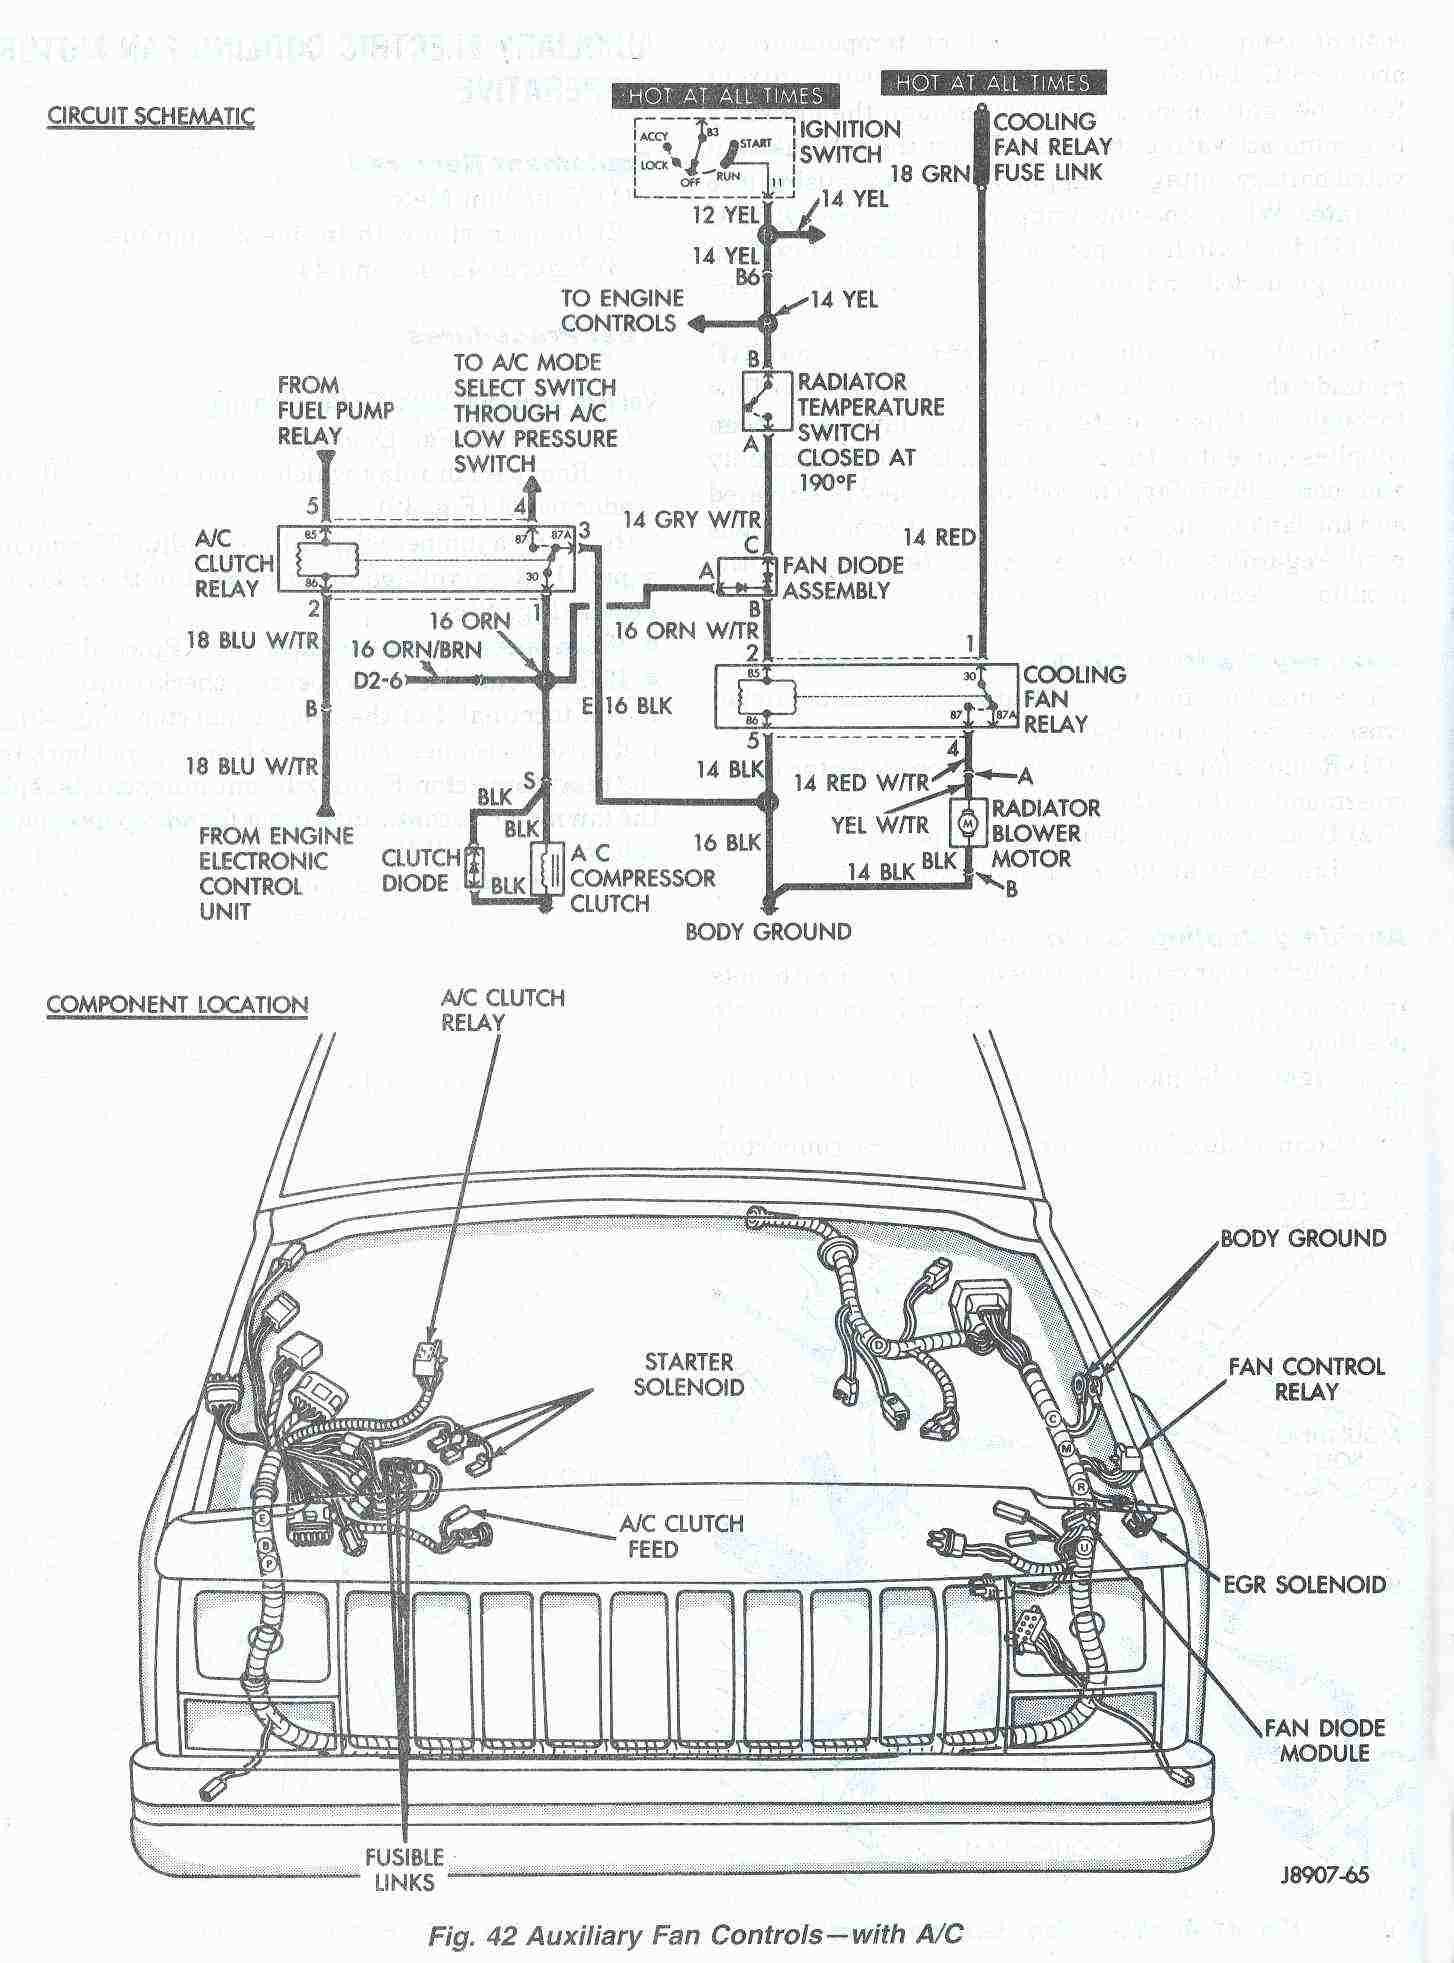 e8c83109bad6c41d377df8c1cb7a8dc4 at the asd relay if vole is not b16 check fuse 20 30 a good there 2004 Jeep Fuse Box Diagram at webbmarketing.co